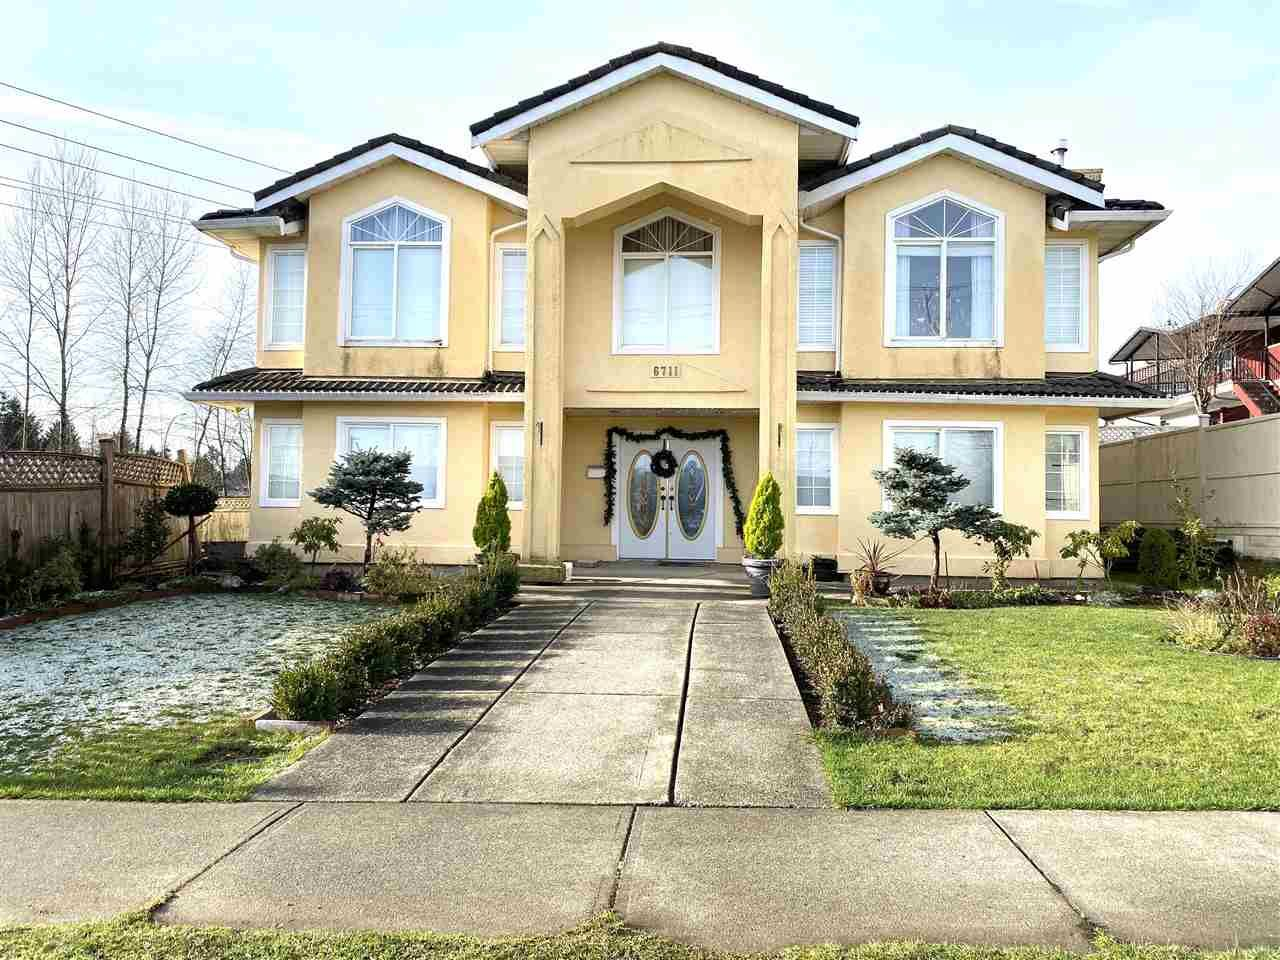 Main Photo: 6711 144 Street in Surrey: East Newton House for sale : MLS®# R2525449